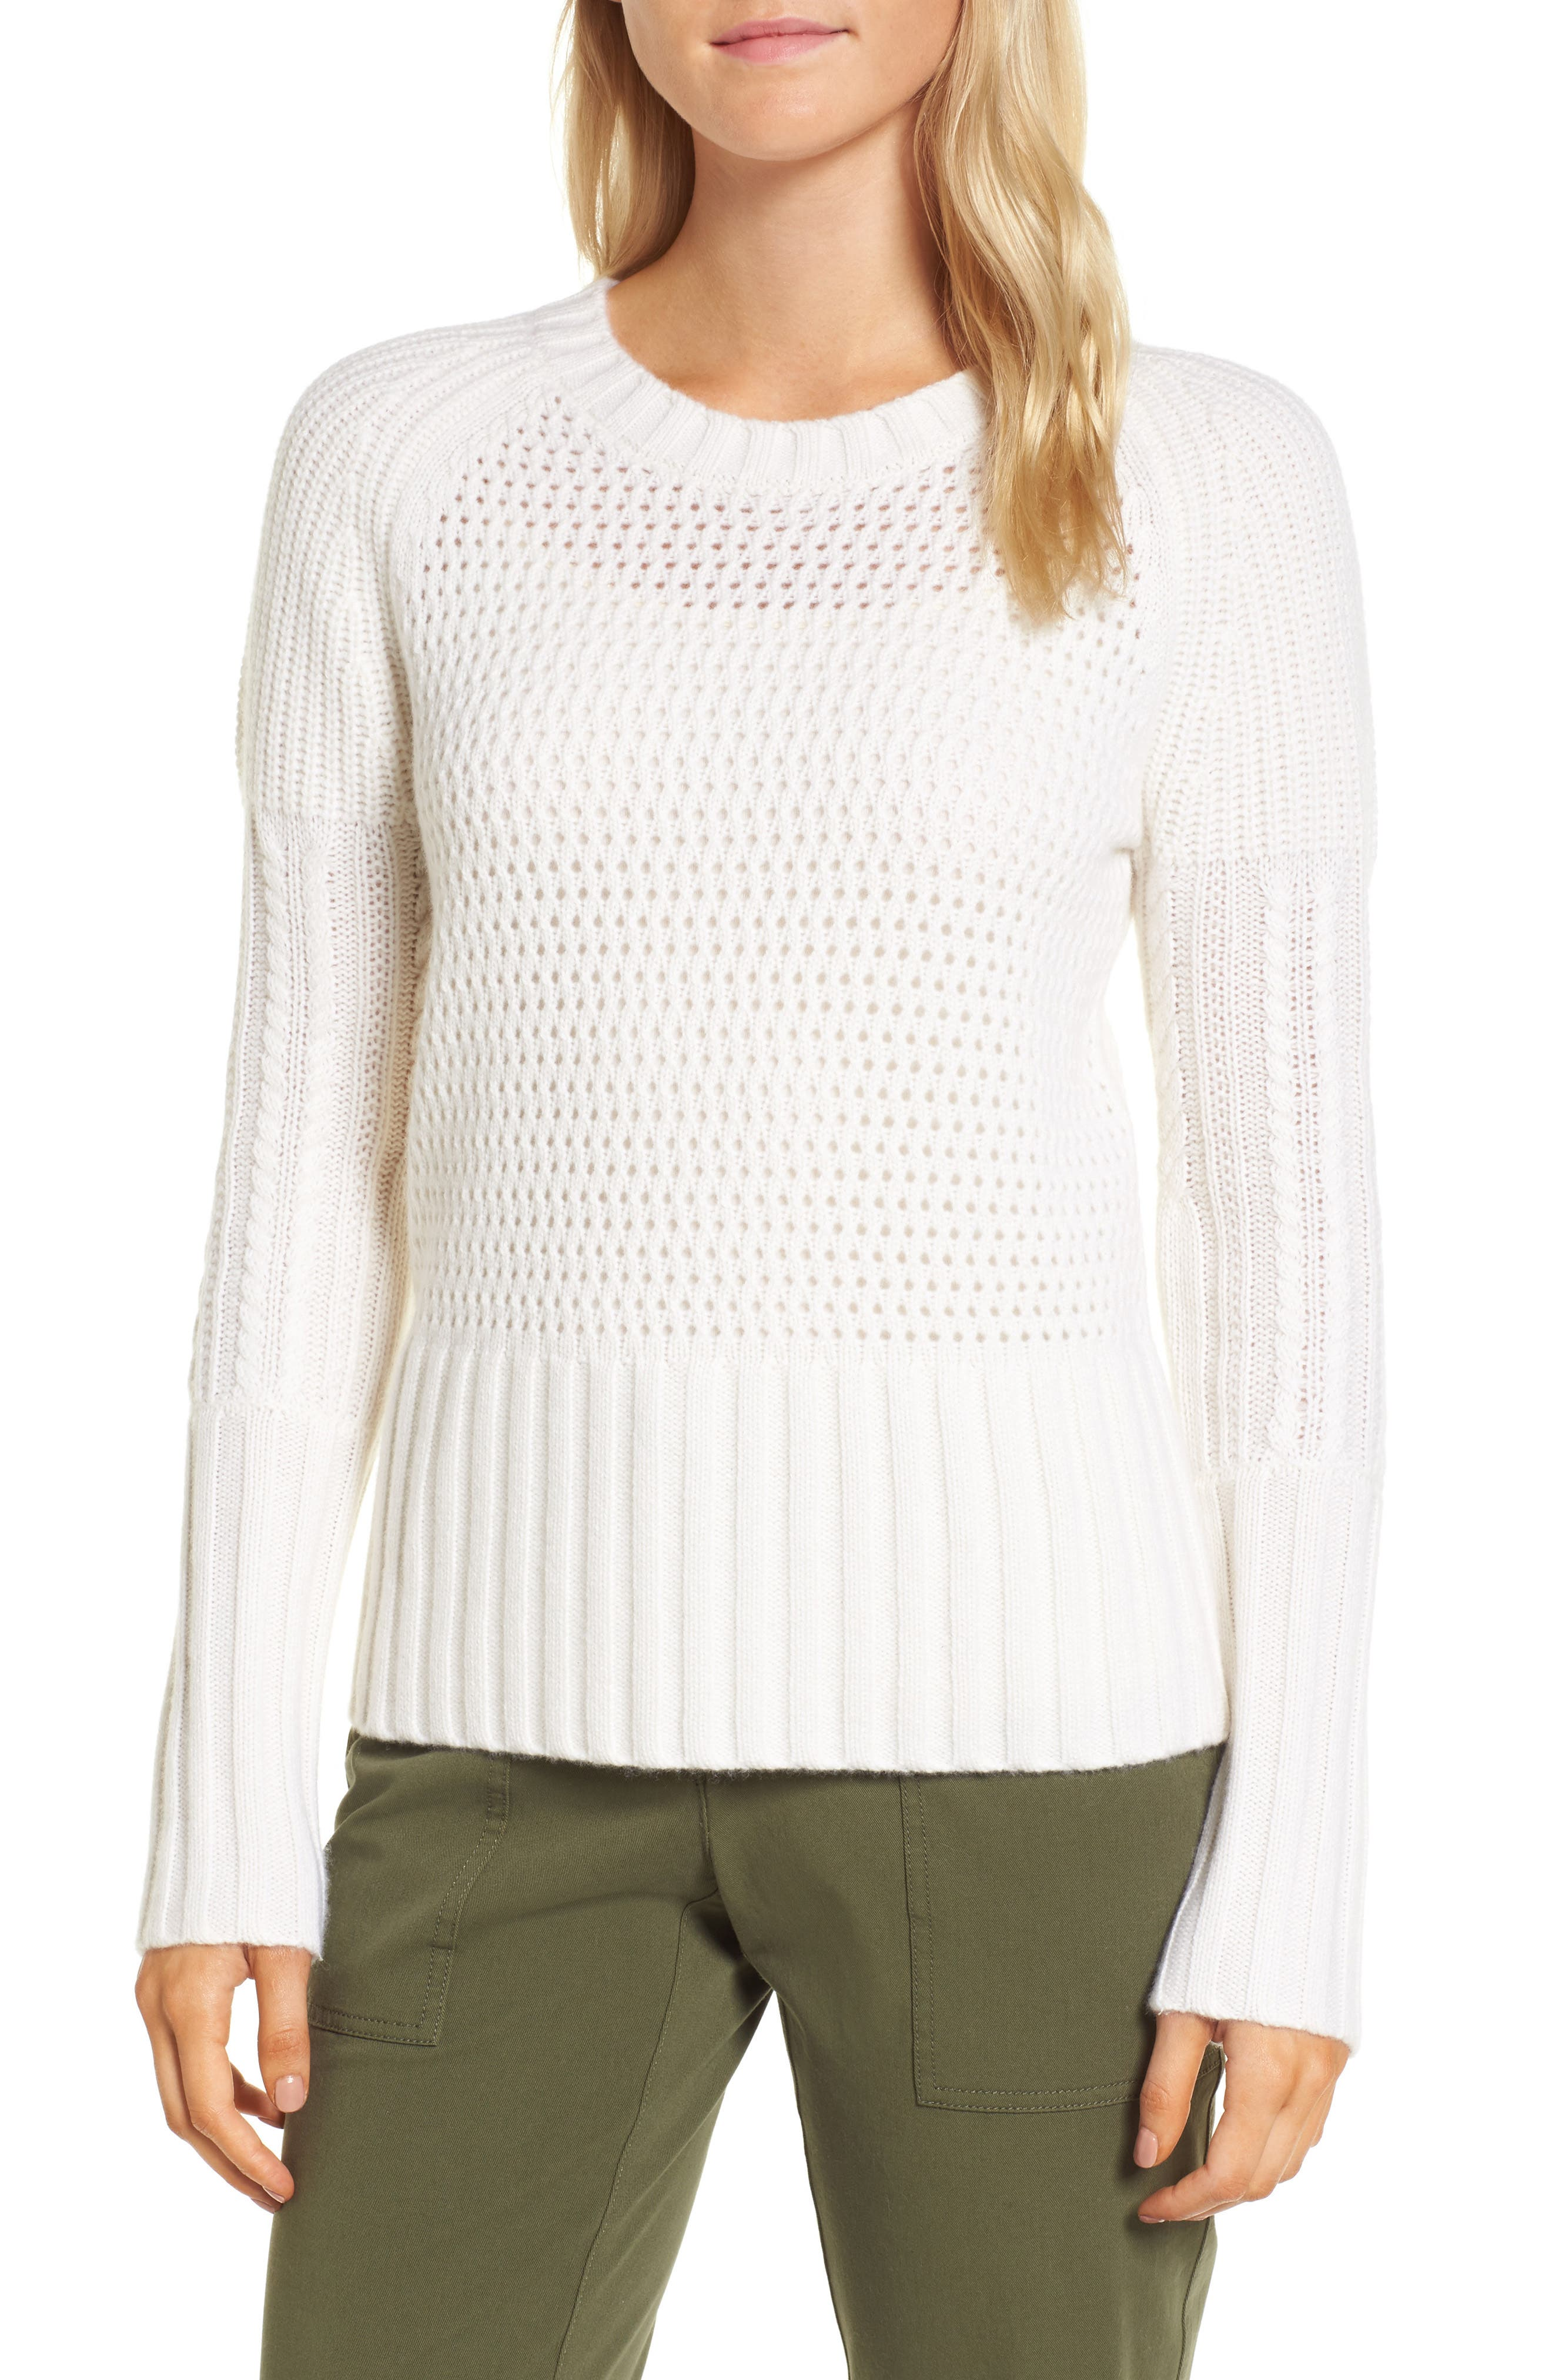 Alternate Image 1 Selected - Nordstrom Signature Mixed Stitch Cashmere Sweater